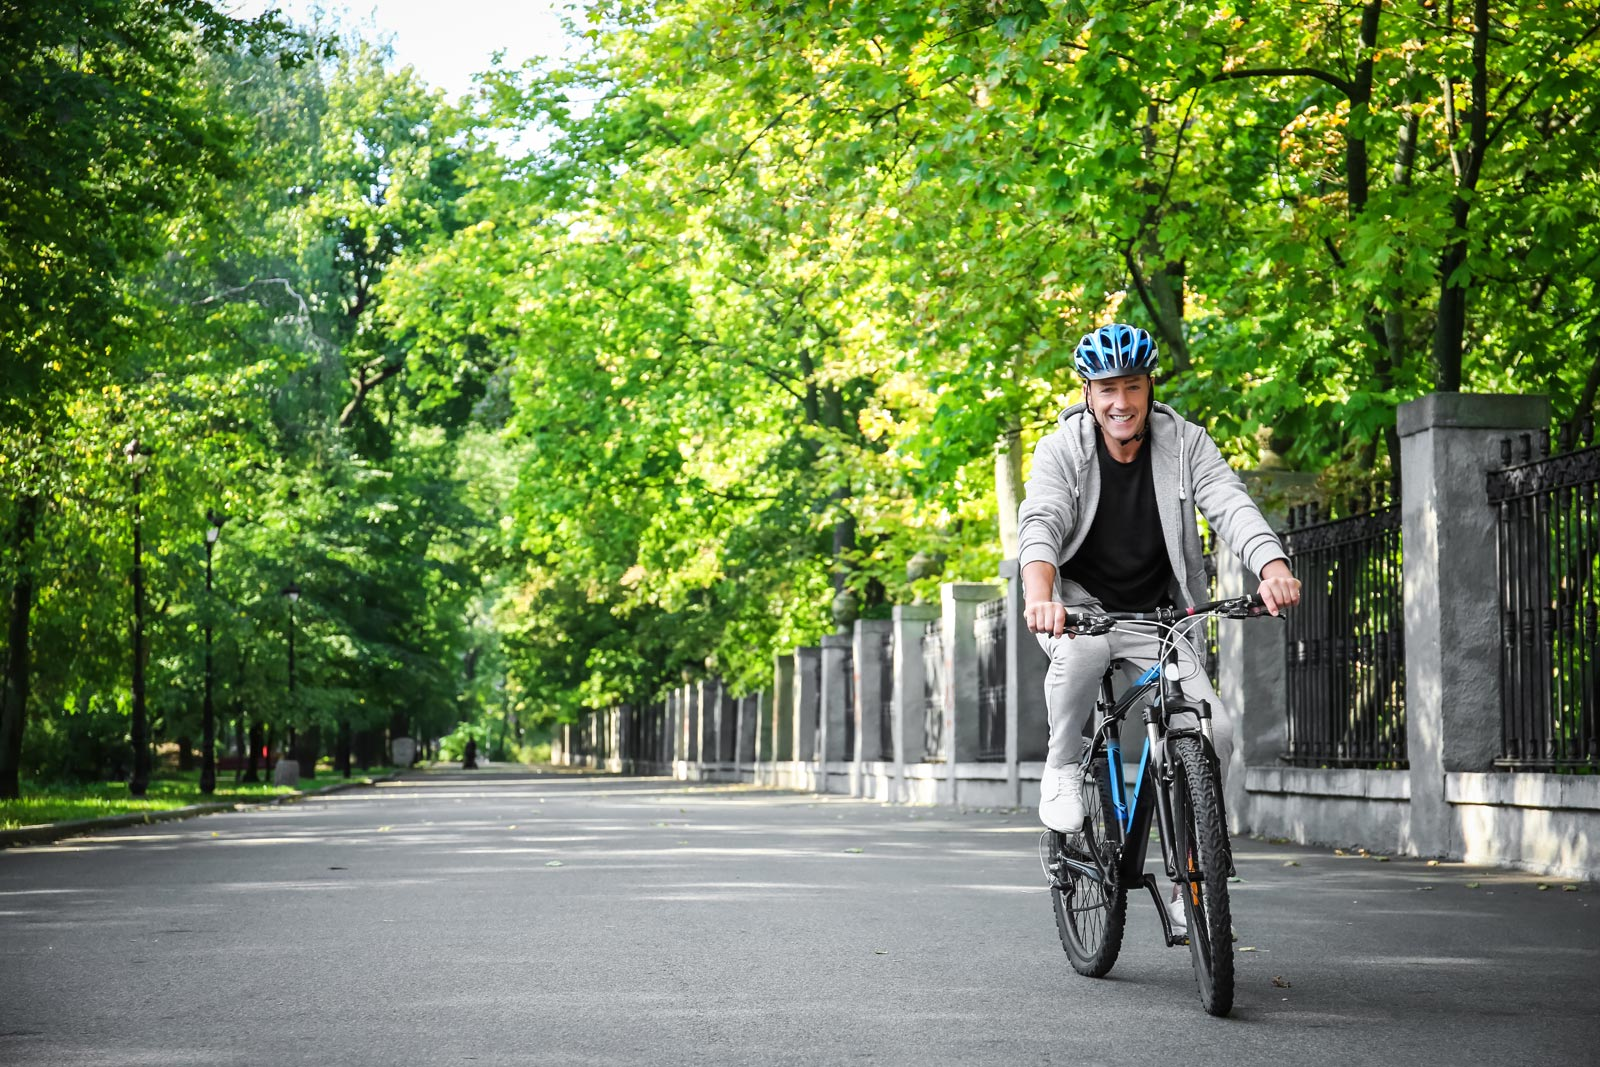 Yes, You Can Learn to Ride a Bicycle Now! – Learning to Ride Safely in the Era of COVID-19